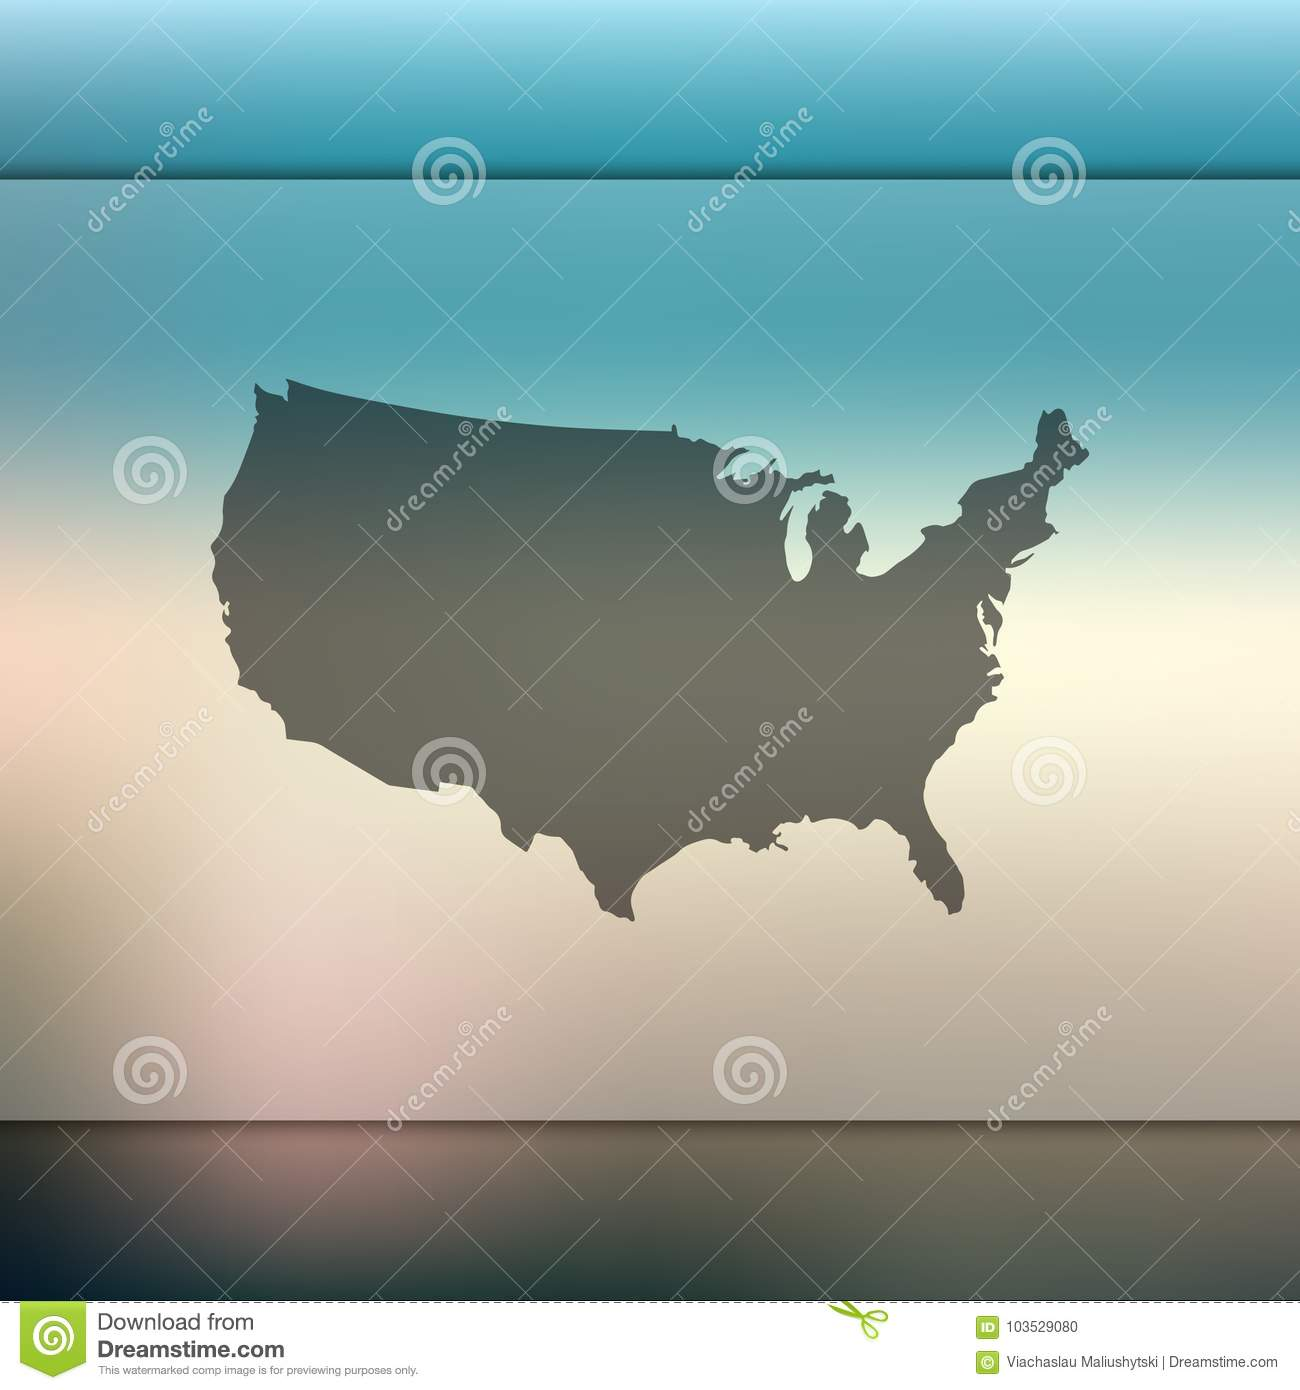 USA Map. Vector Silhouette Of USA. Blurred Background ... Sunrise Map Of Usa on map of charleston civic center, map of glades county, map of shalimar, map of seaport, map of el portal, map of botanic garden, map of arden way, map of sopchoppy, map of carol city, map of wimauma, map of hillsboro beach, map of pahokee, map of sun city center, map of east boca, map of rotonda, map of casselberry, map of tule springs, map of camelback, map of fashion square, map of holly hill,